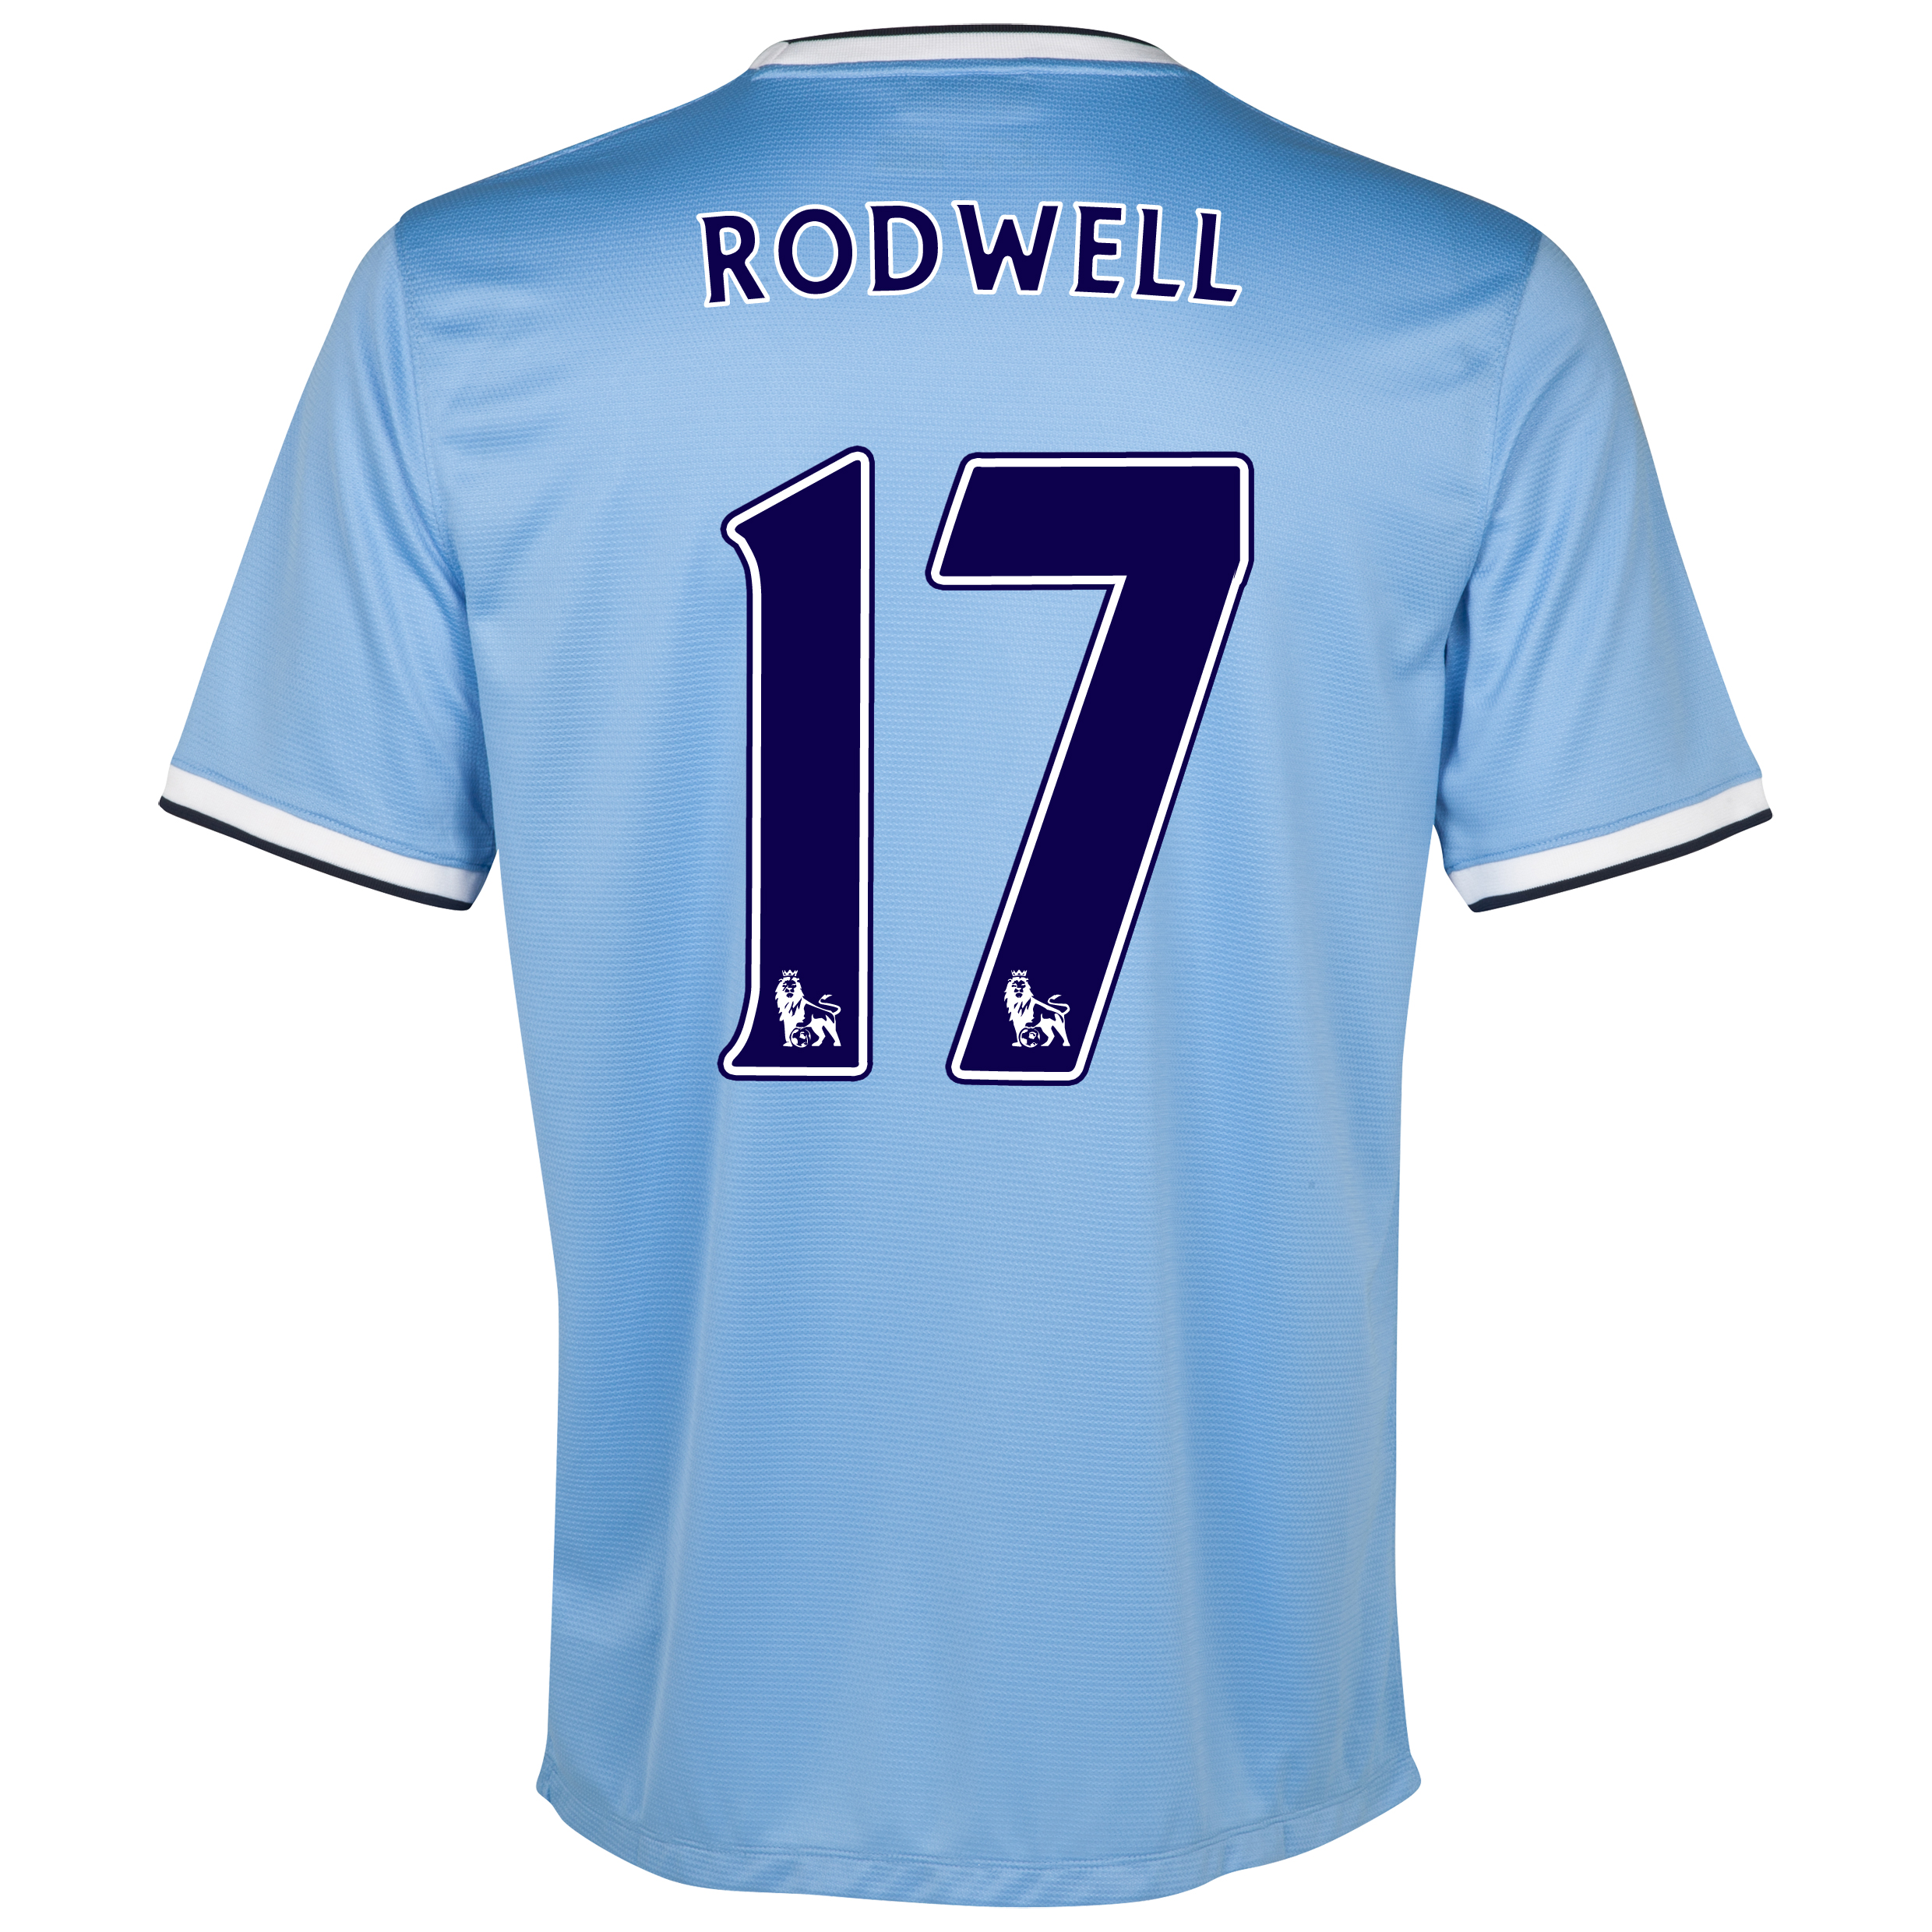 Manchester City Home Shirt 2013/14 - Womens with Rodwell 17 printing